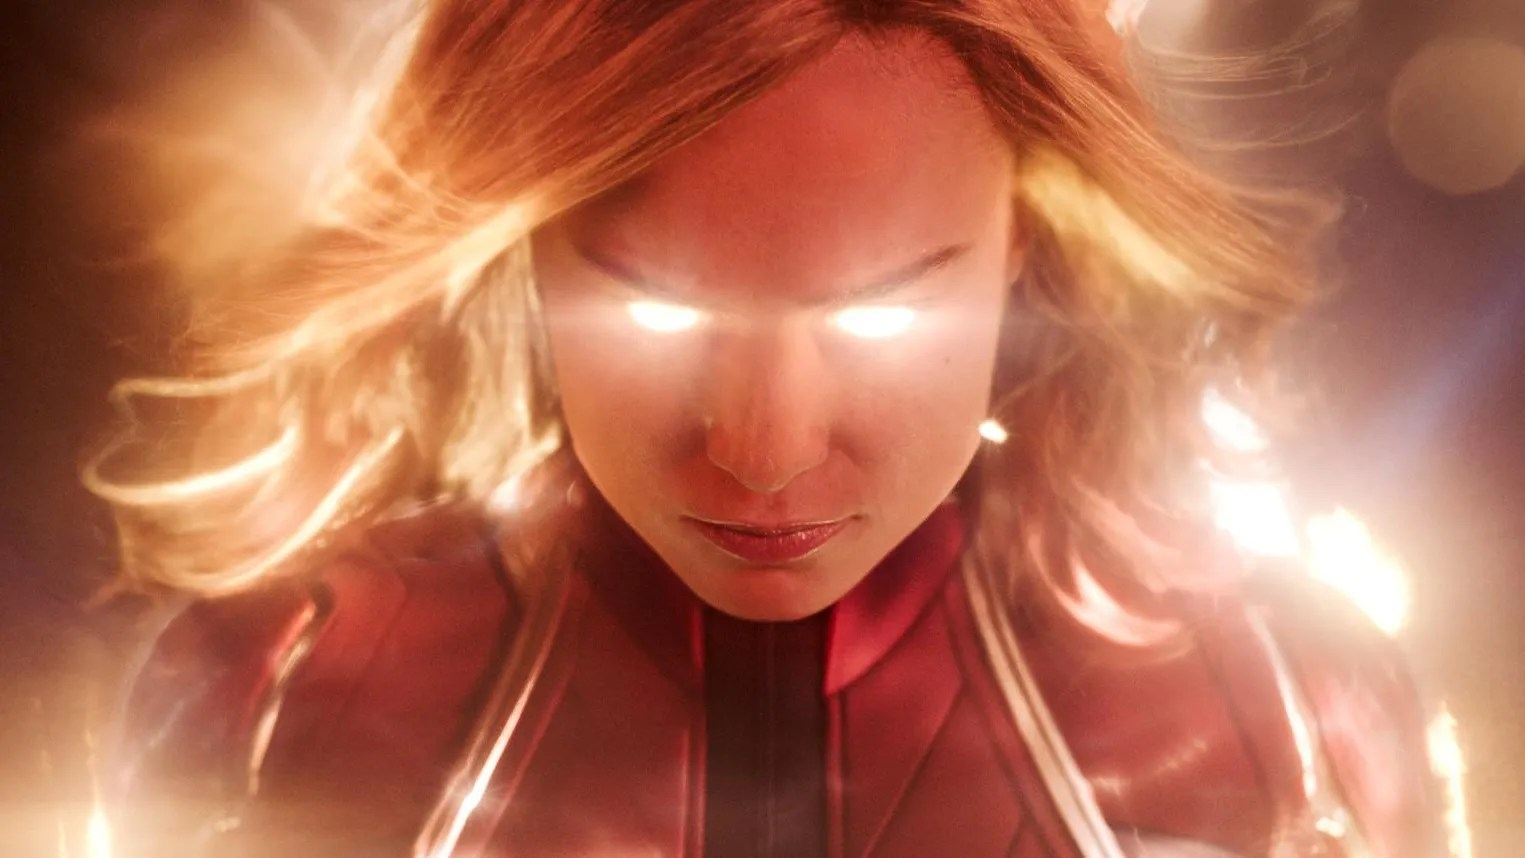 captain marvel' opening weekend: brie larson visits nj movie theater